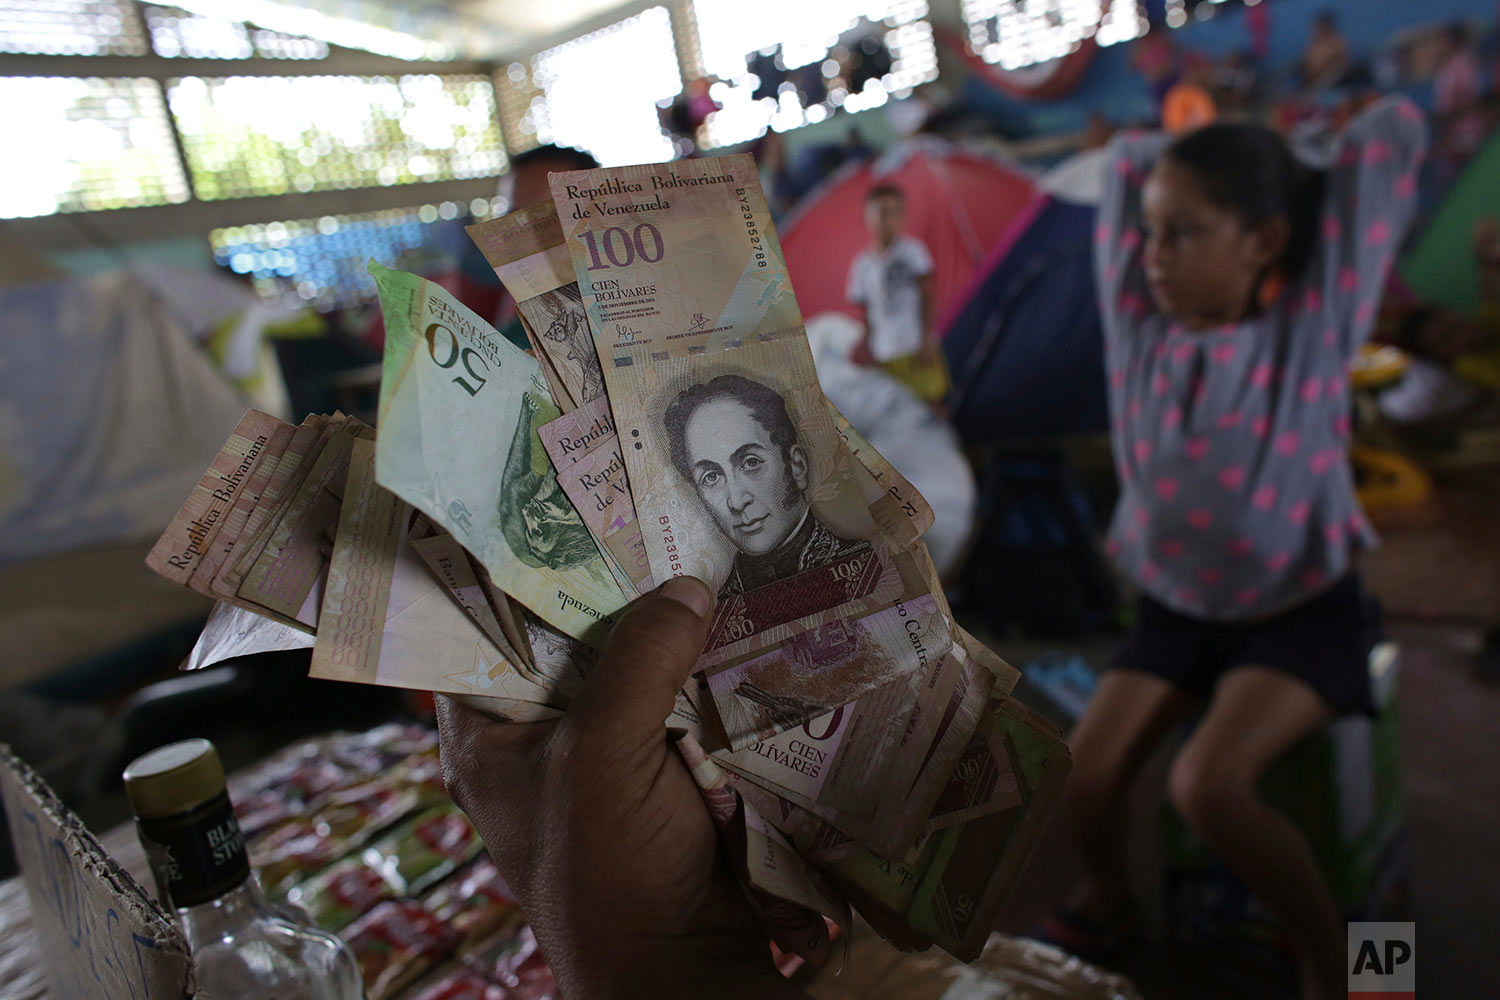 Venezuelan migrant Charlie Ivan Delgado shows his country's currency as he talks about the economic crisis at a migrant shelter that offers three meals a day where he brought his family of five, inside the Tancredo Neves Gymnasium in Boa Vista, Roraima state, Brazil, March 8, 2018. (AP Photo/Eraldo Peres)